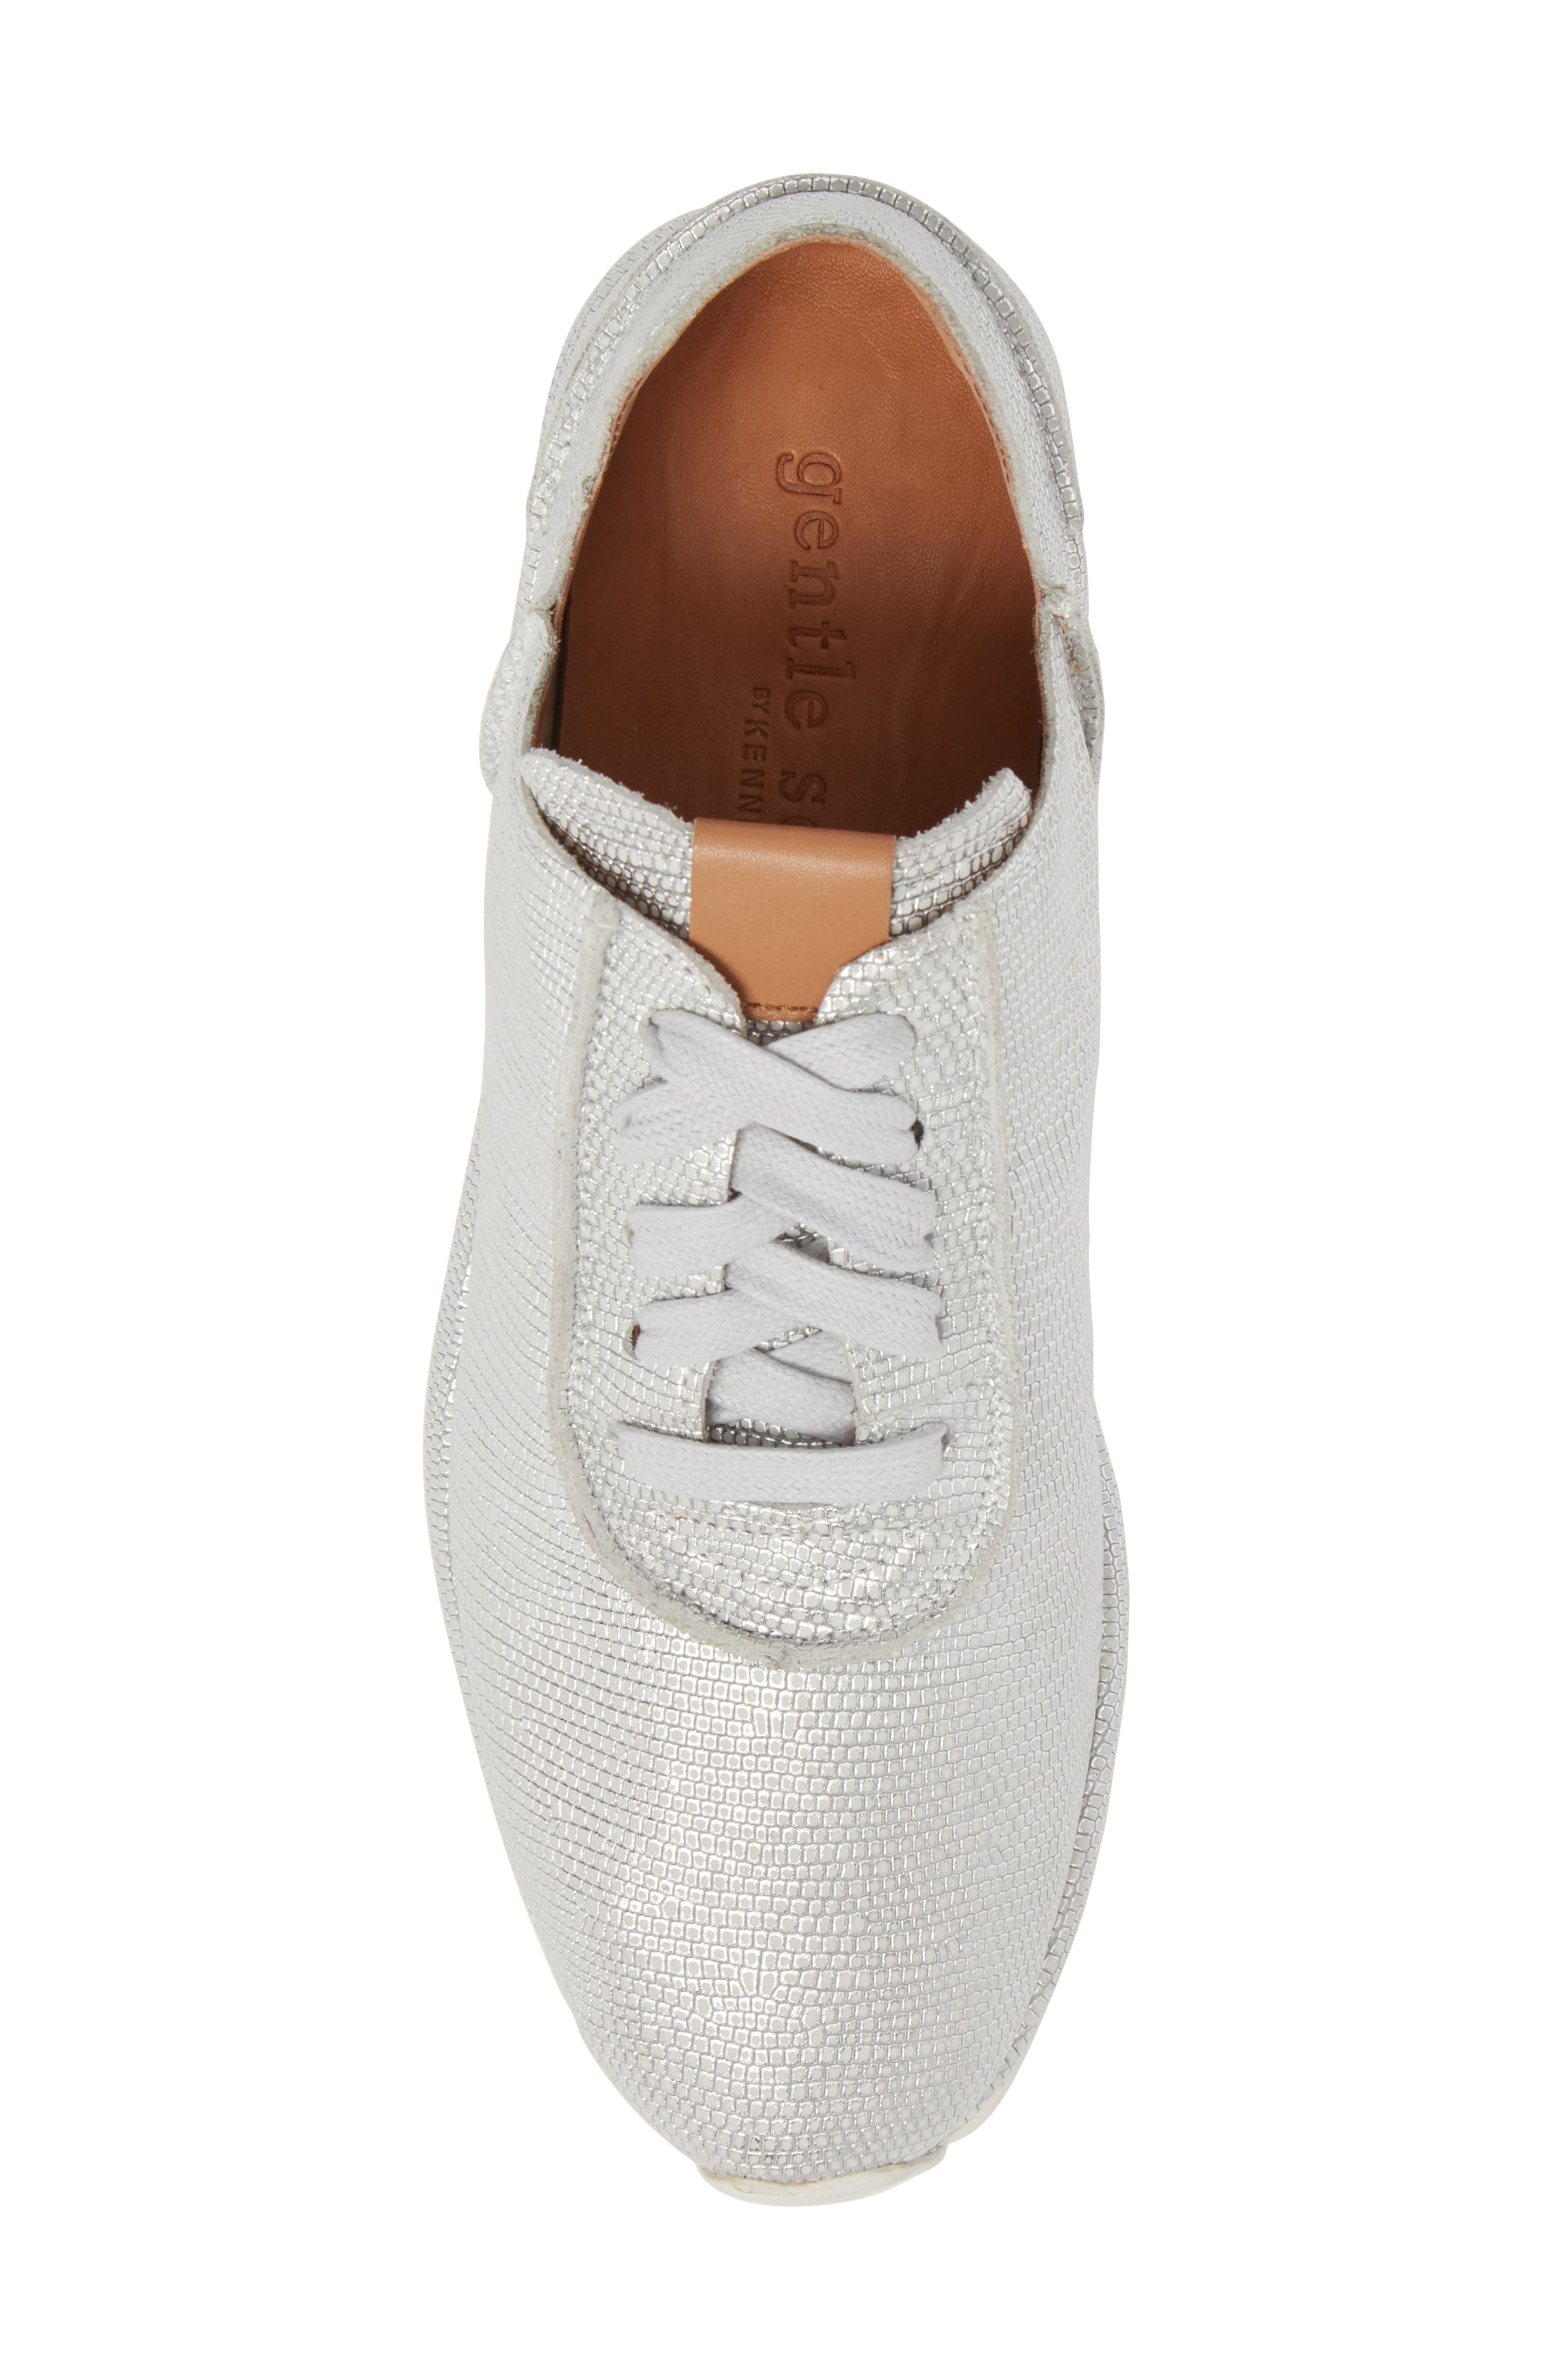 GENTLE SOULS BY KENNETH COLE, Raina Sneaker, Alternate thumbnail 5, color, WHITE/ SILVER LEATHER